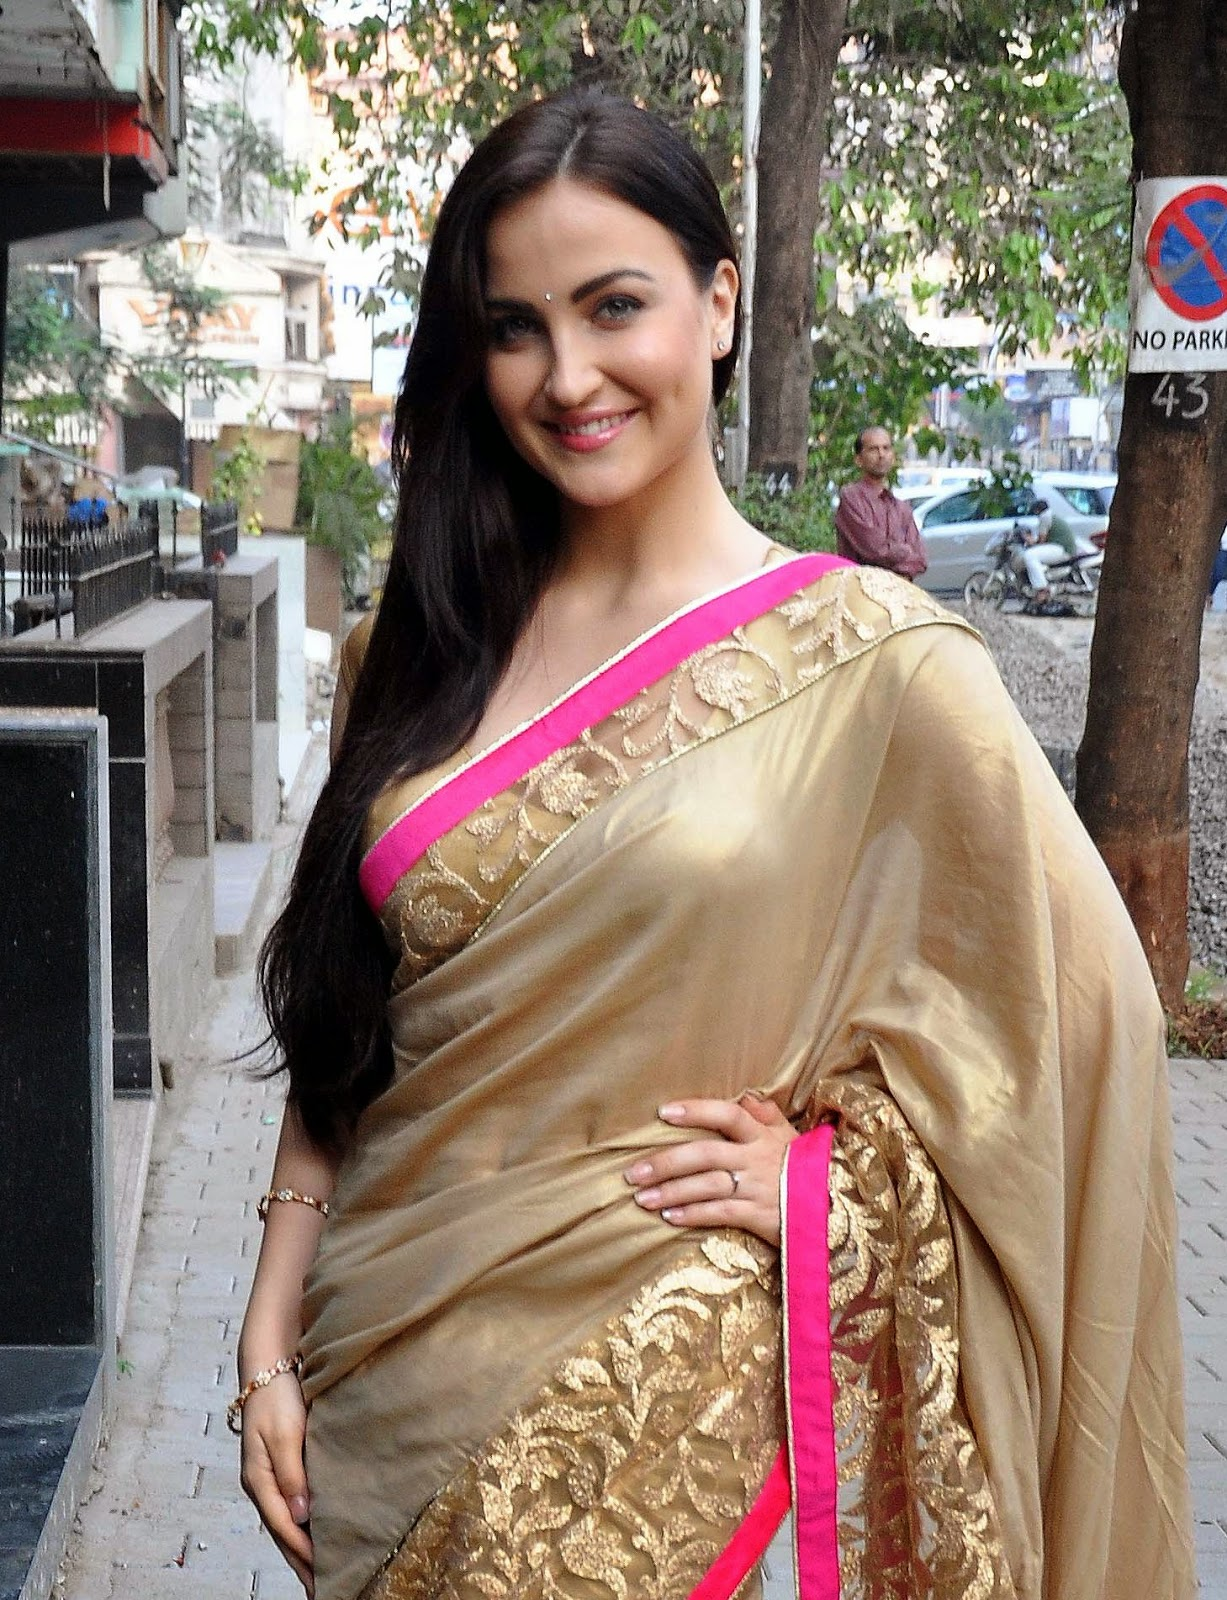 High Quality Bollywood Celebrity Pictures: Elli Avram and